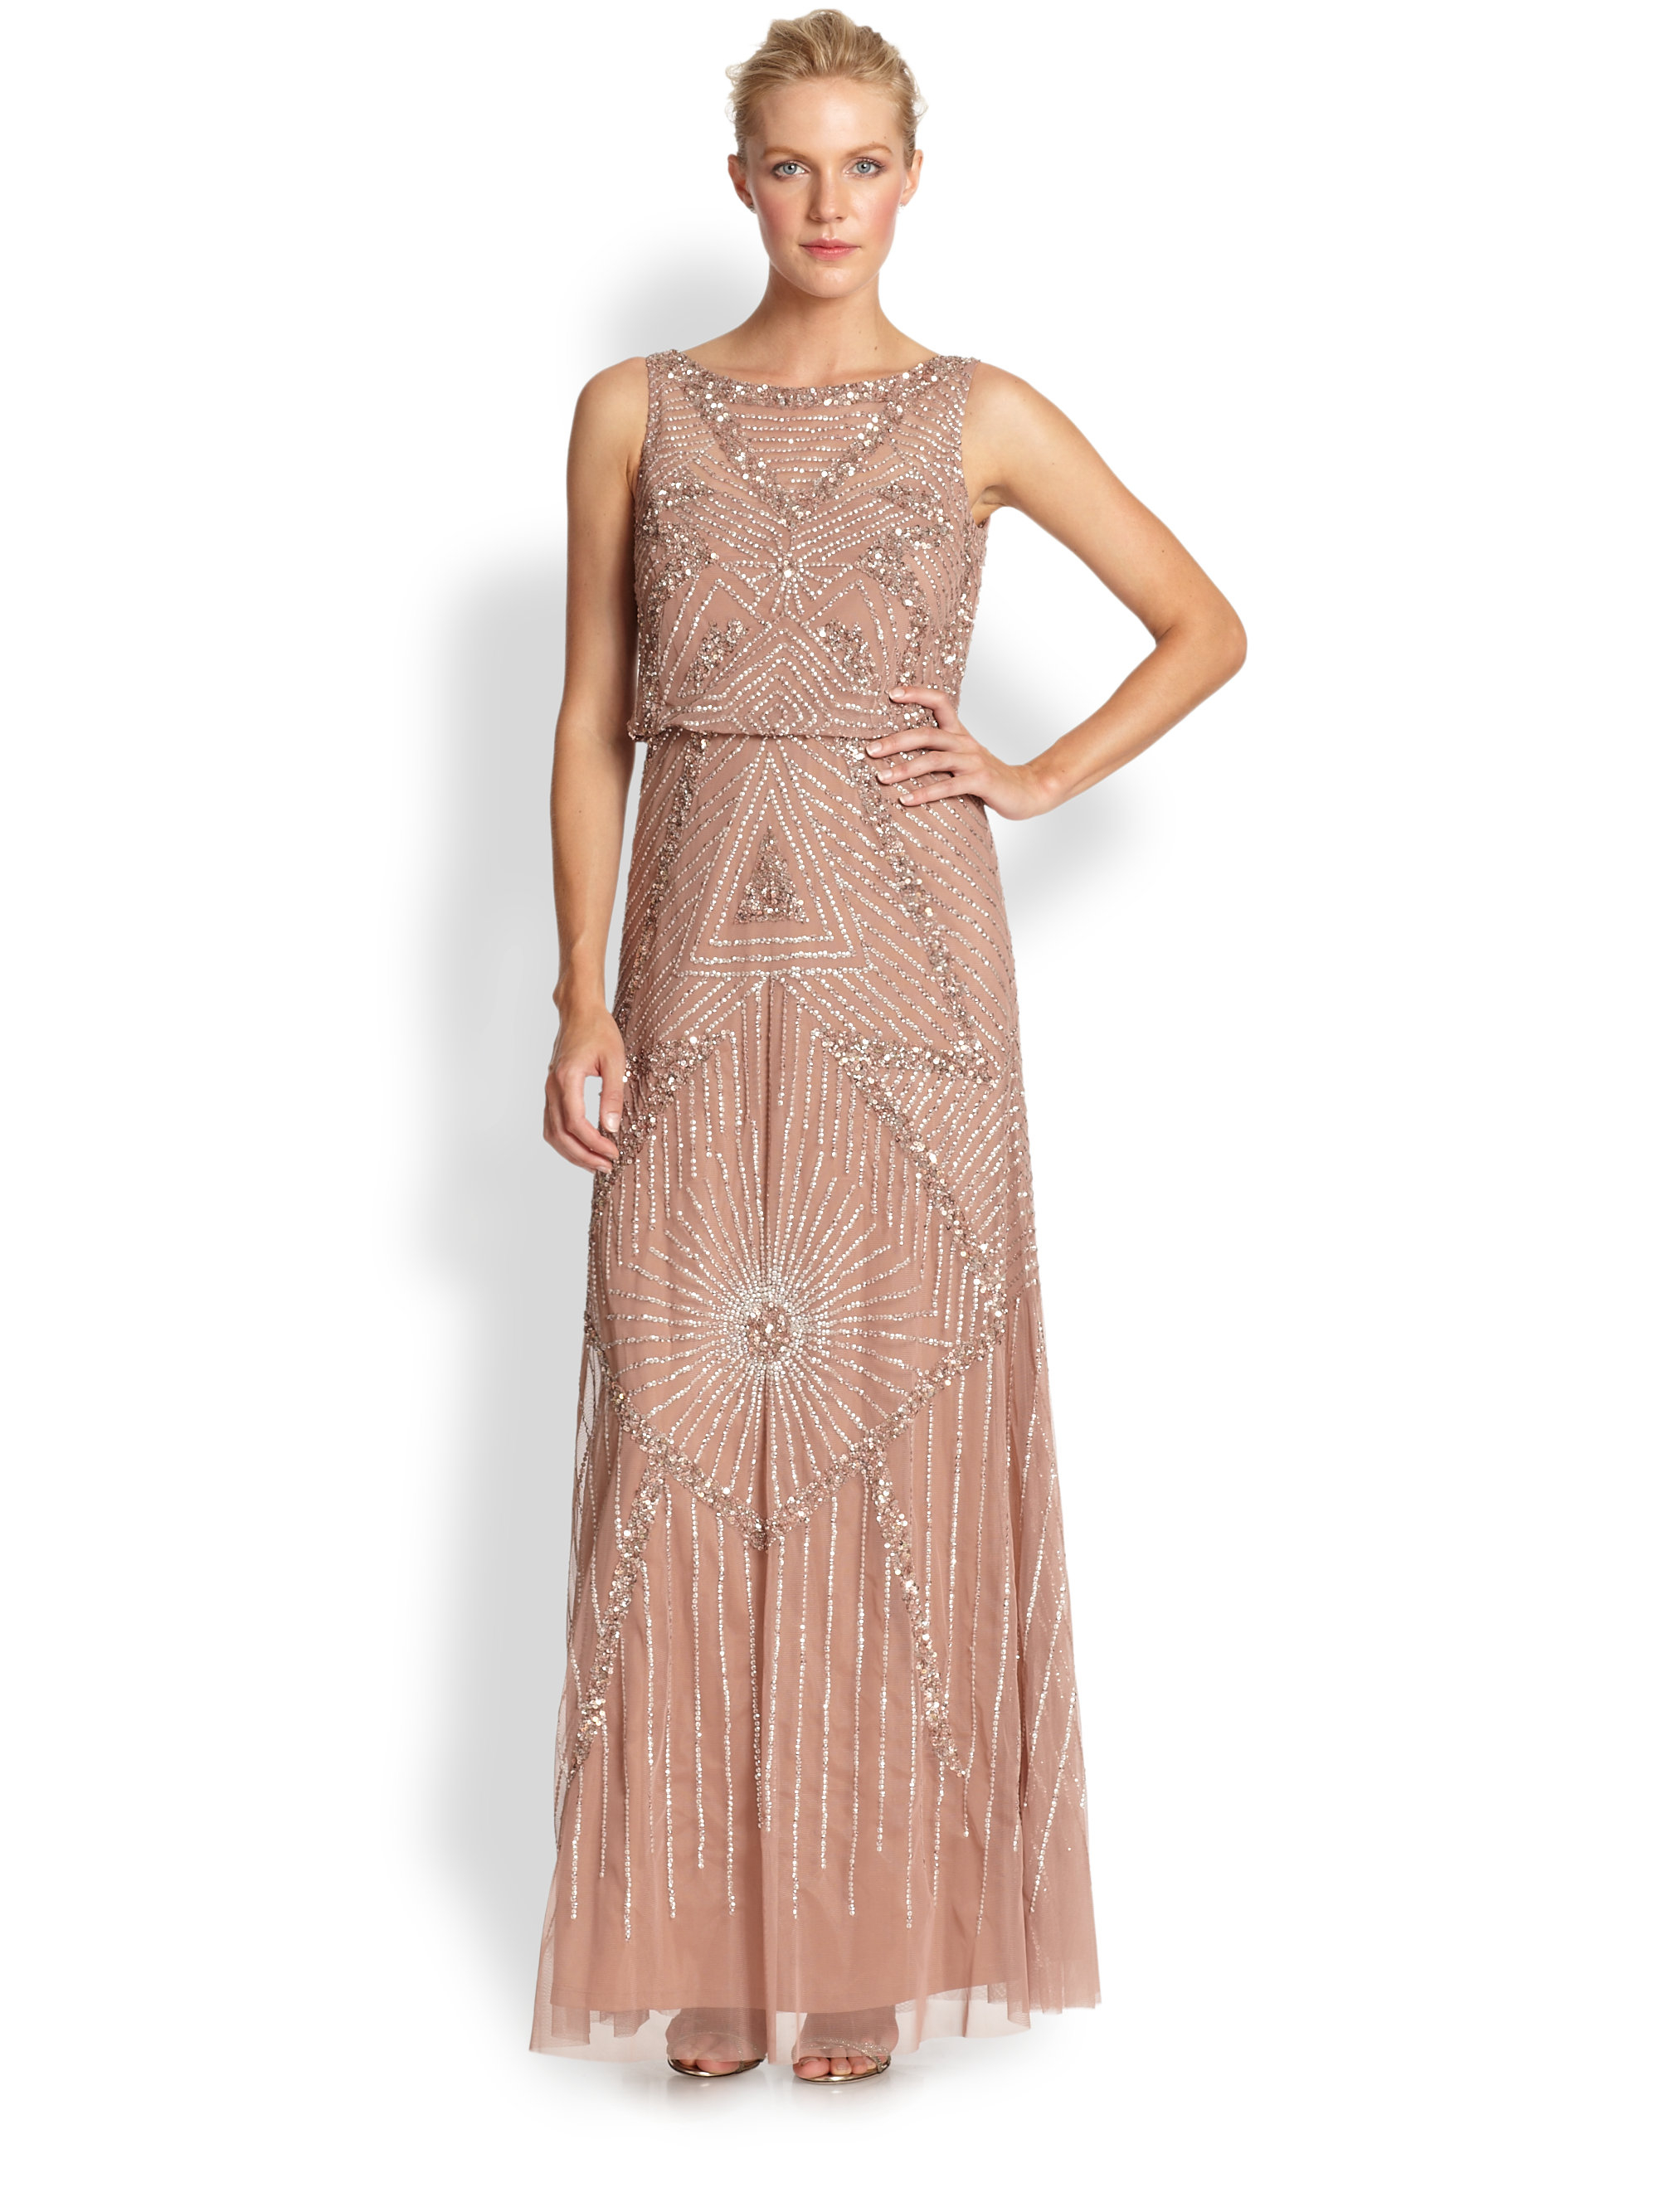 Lyst - Aidan Mattox Beaded Gown in Pink